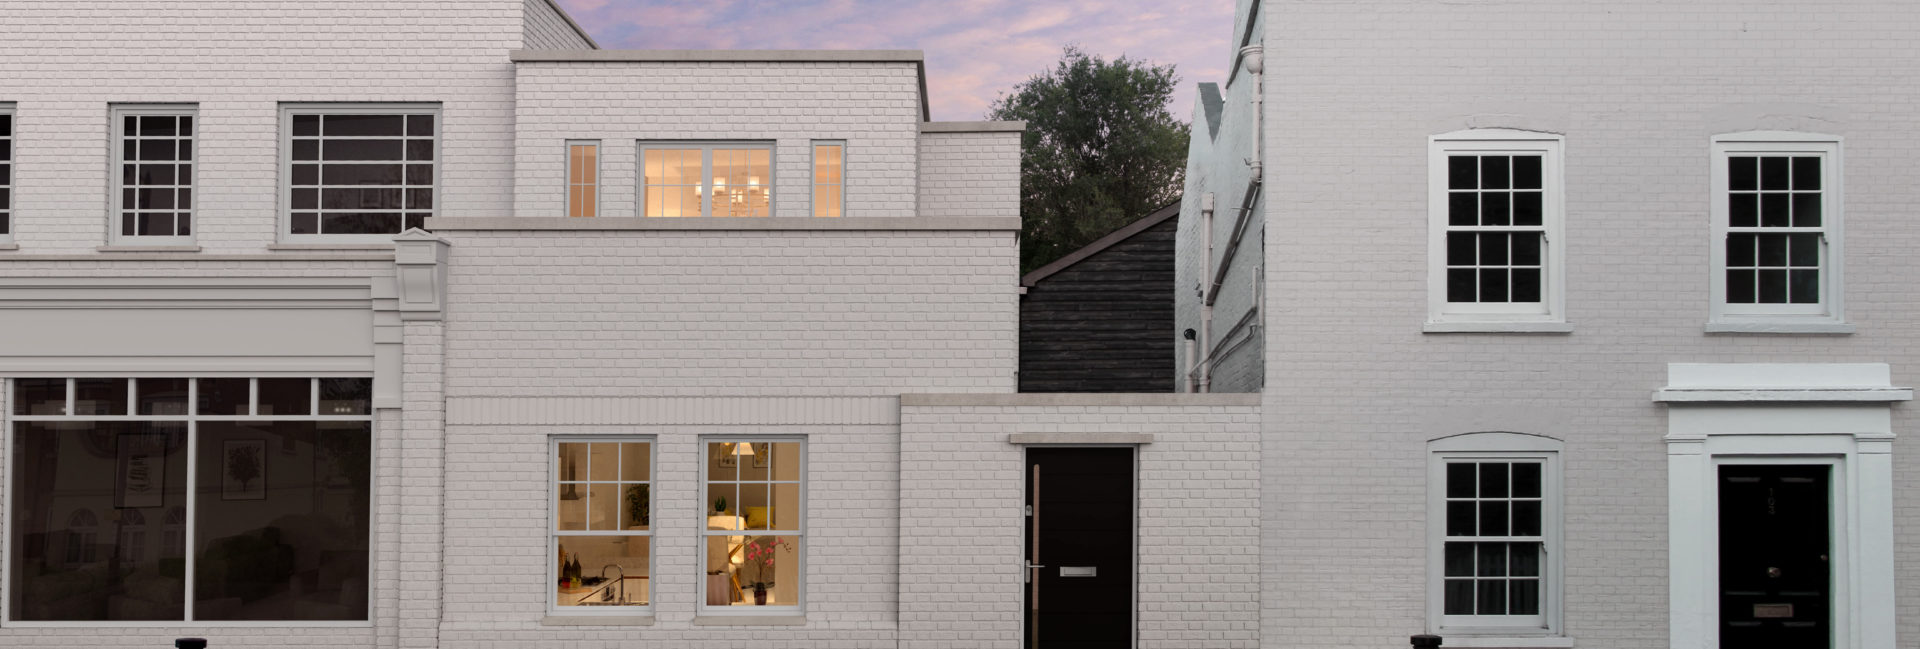 land purchasing | New build homes Enfield | North London property developer